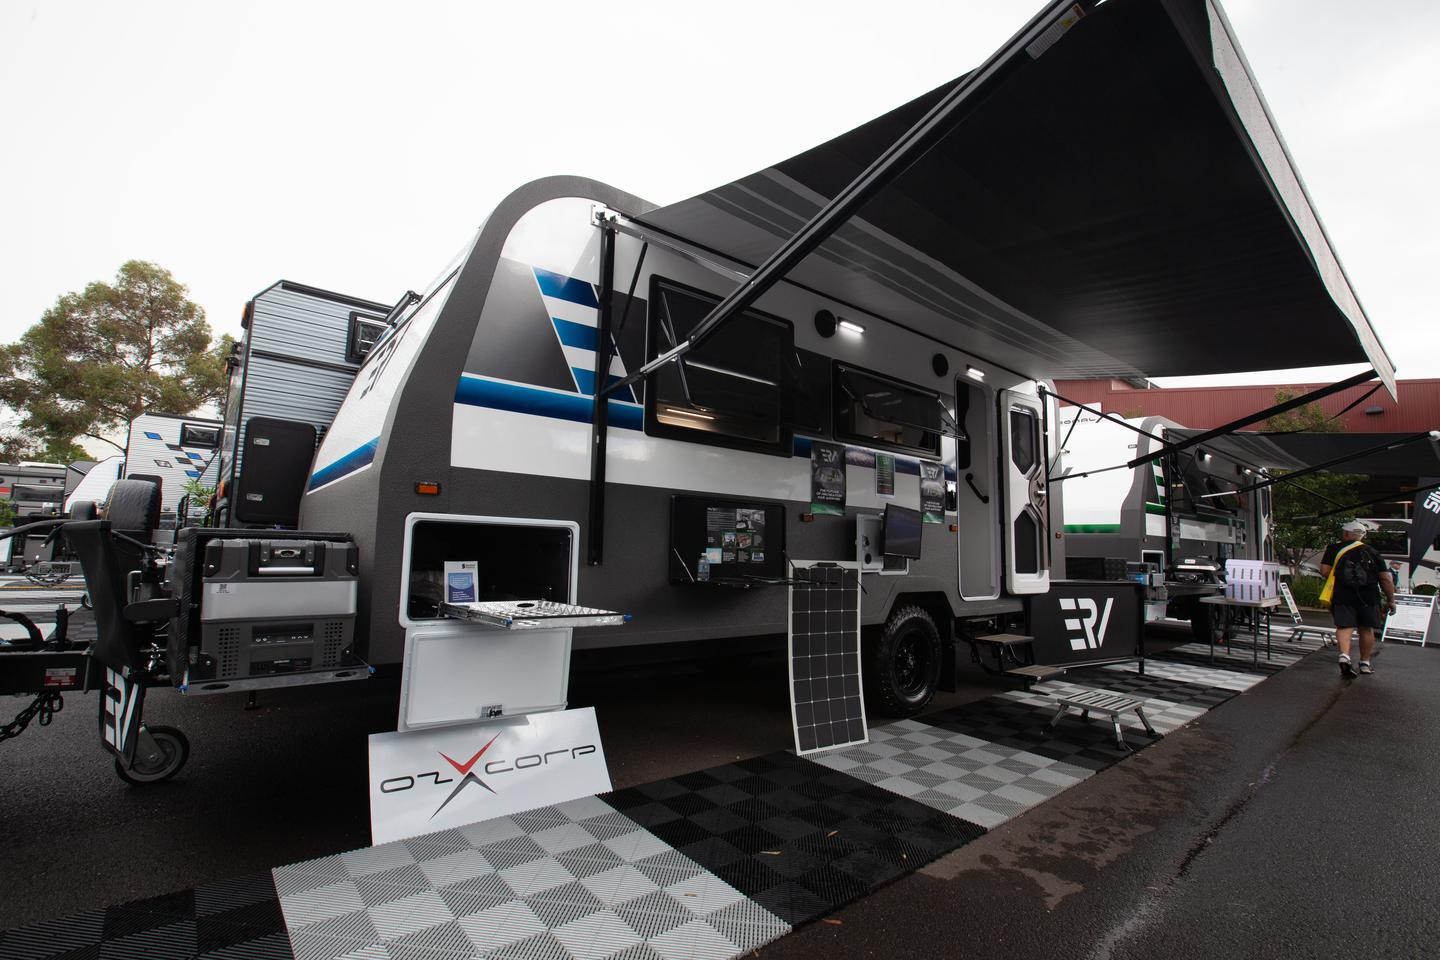 A joint project between Retreat Caravans and OzXcorp, the ERV is billed as the world's first all-electric caravan, eliminating the need for LPG and other fuels